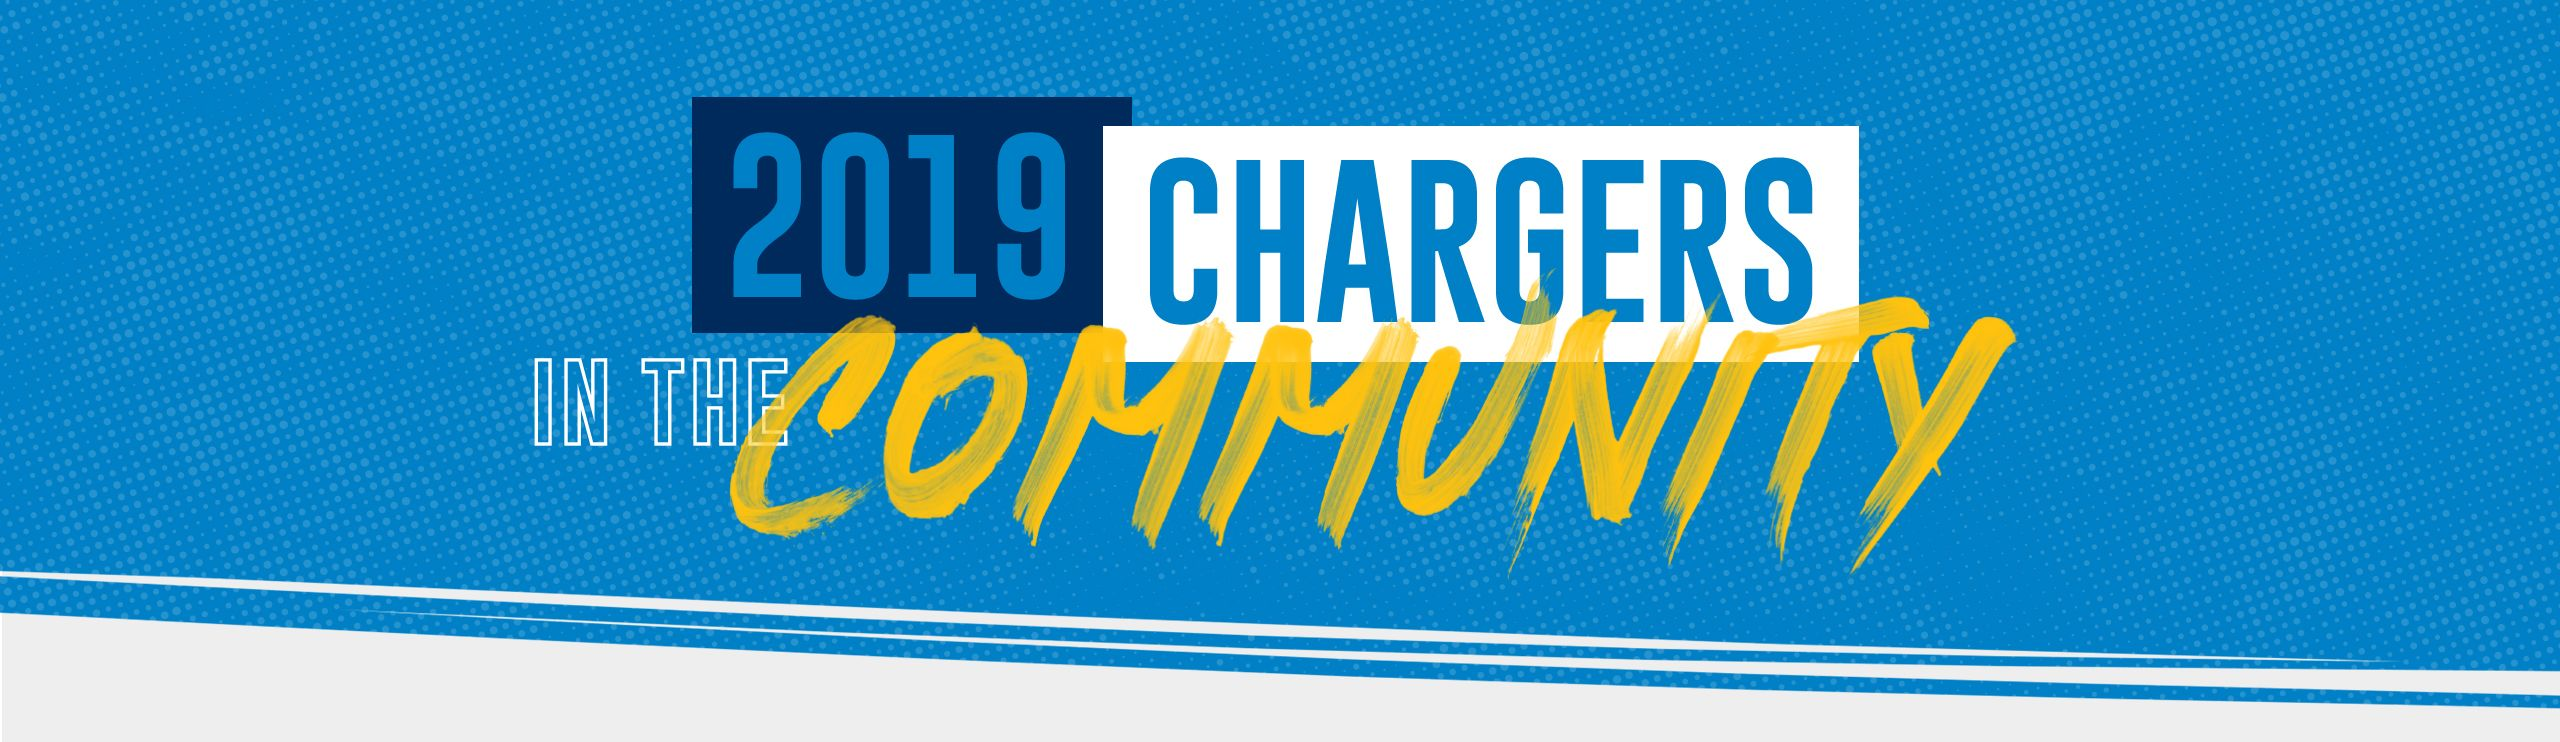 200124_Site_LP_Chargers_In_The_Community_Part_1